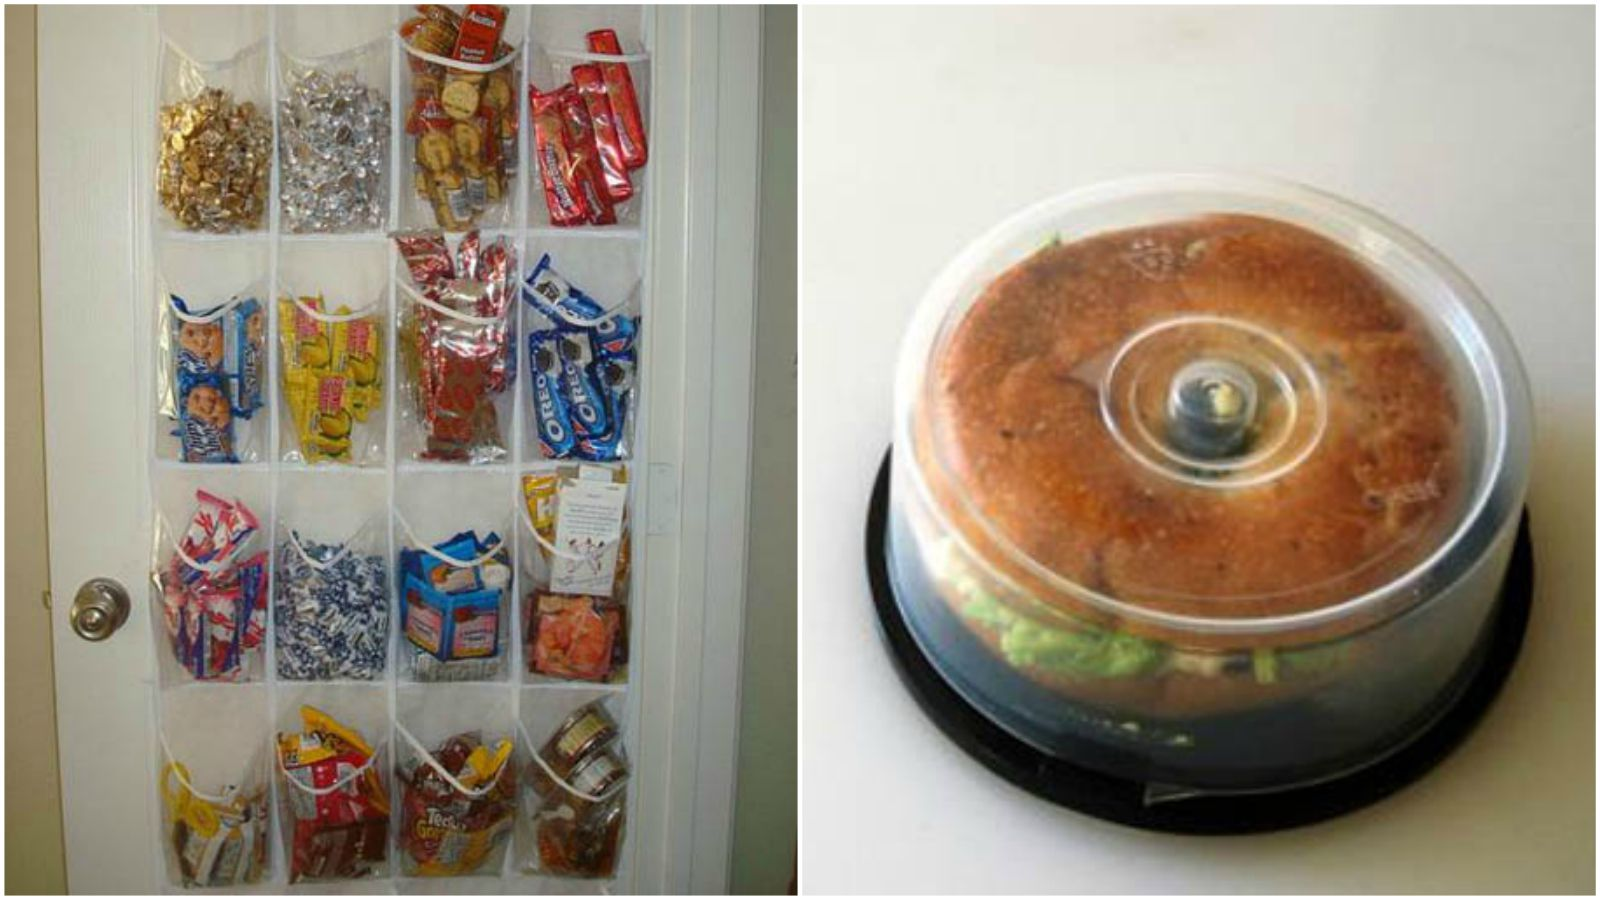 18 Upcycling Ideas to Reuse Common Household Items